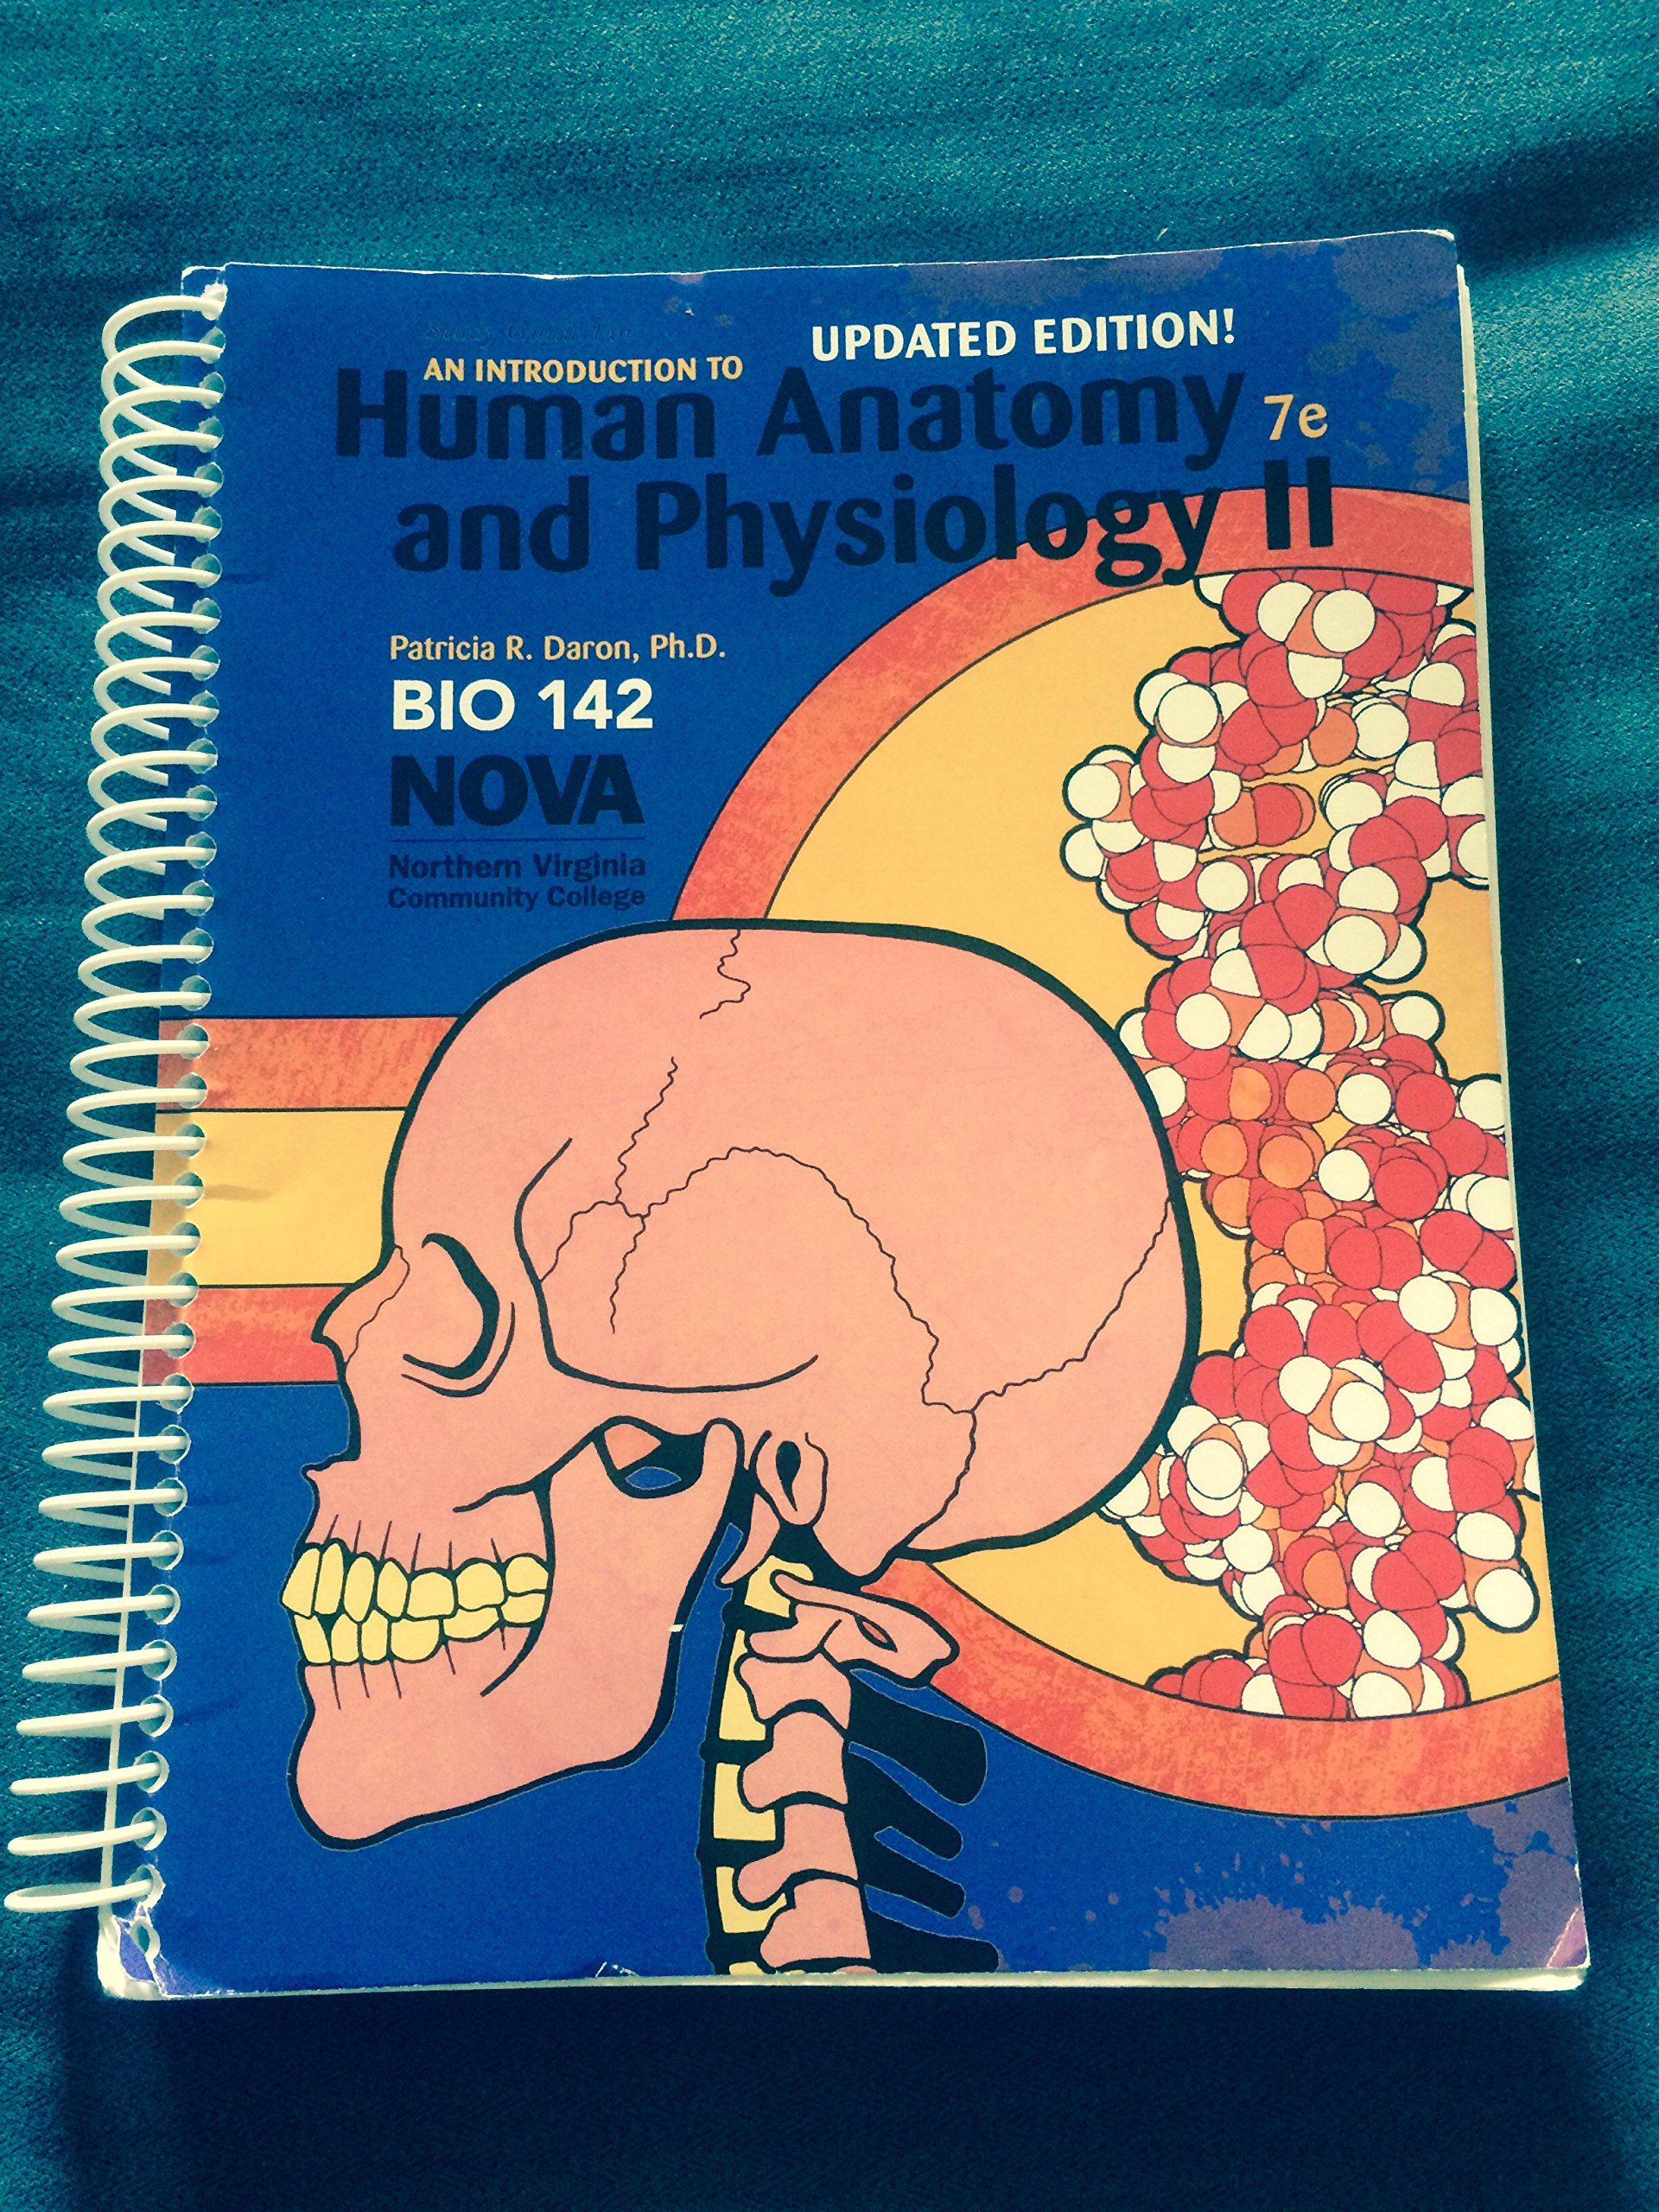 An Introduction to Human Anatomy and Physiology II 7th